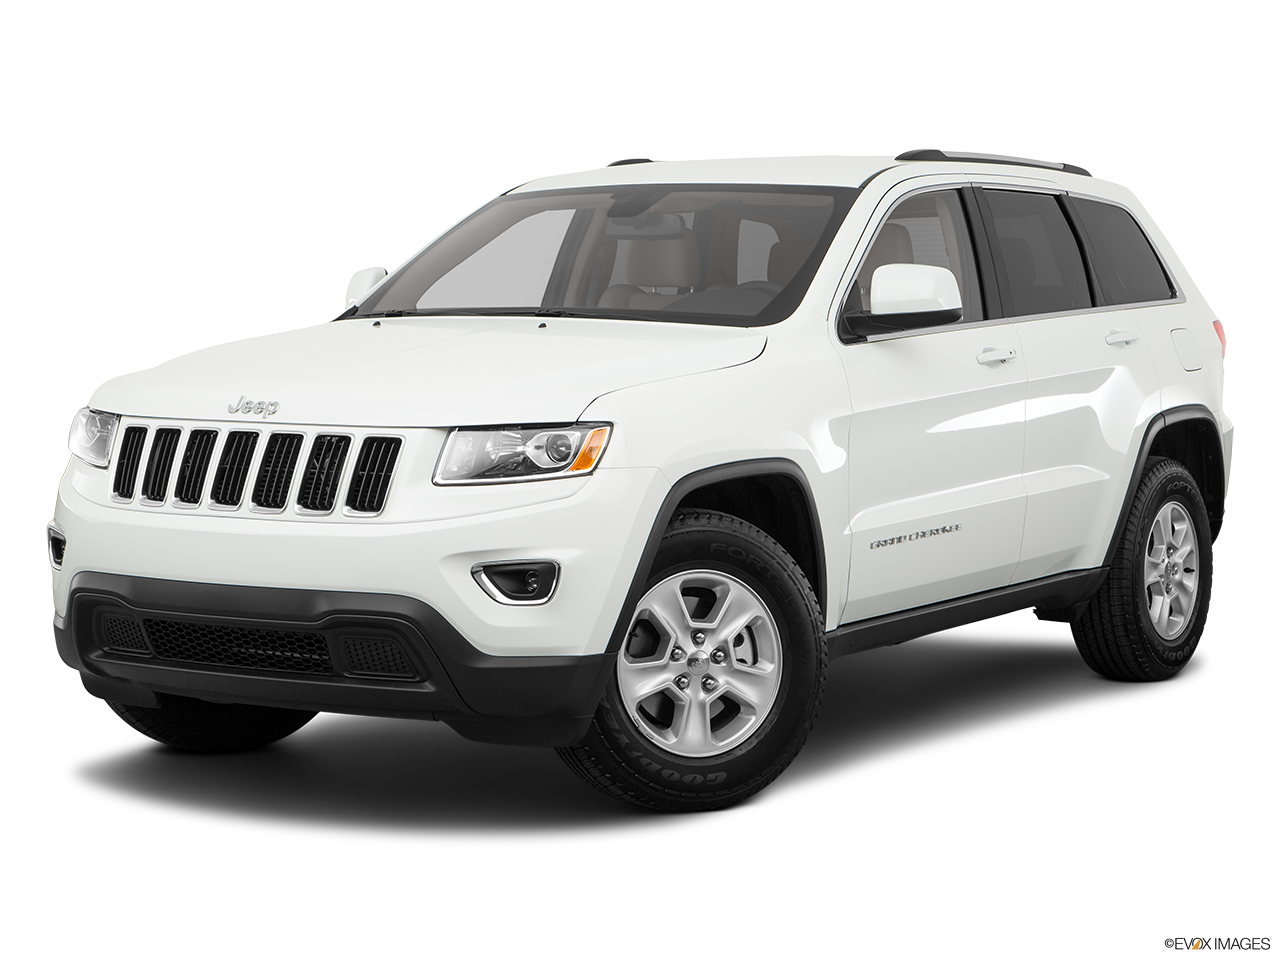 Test Drive A 2016 Jeep Grand Cherokee at Cherry Hill Dodge Chrysler Jeep RAM in Cherry Hill